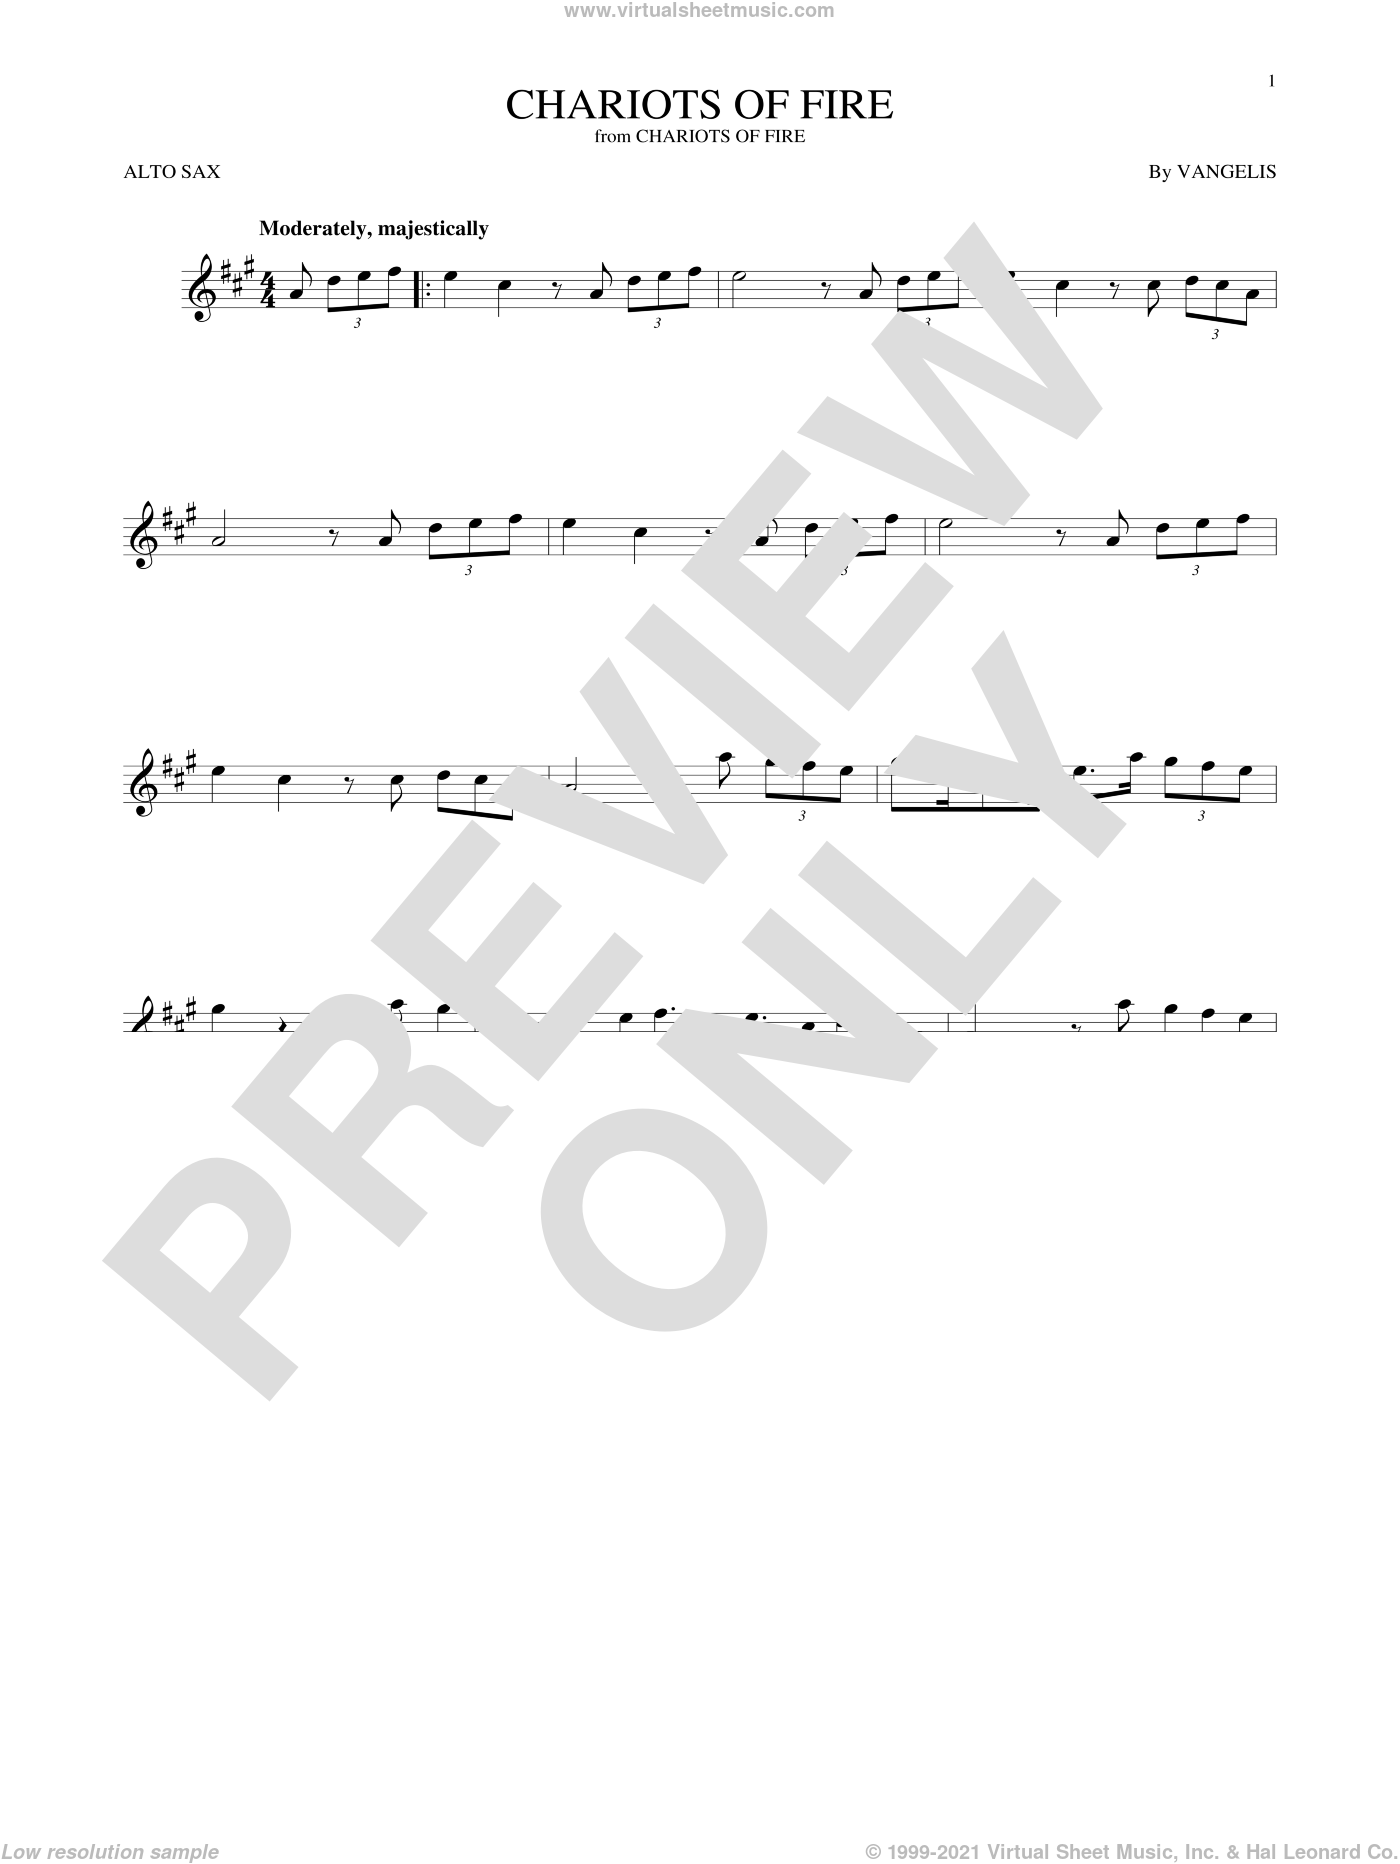 Chariots Of Fire sheet music for alto saxophone solo by Vangelis, intermediate skill level